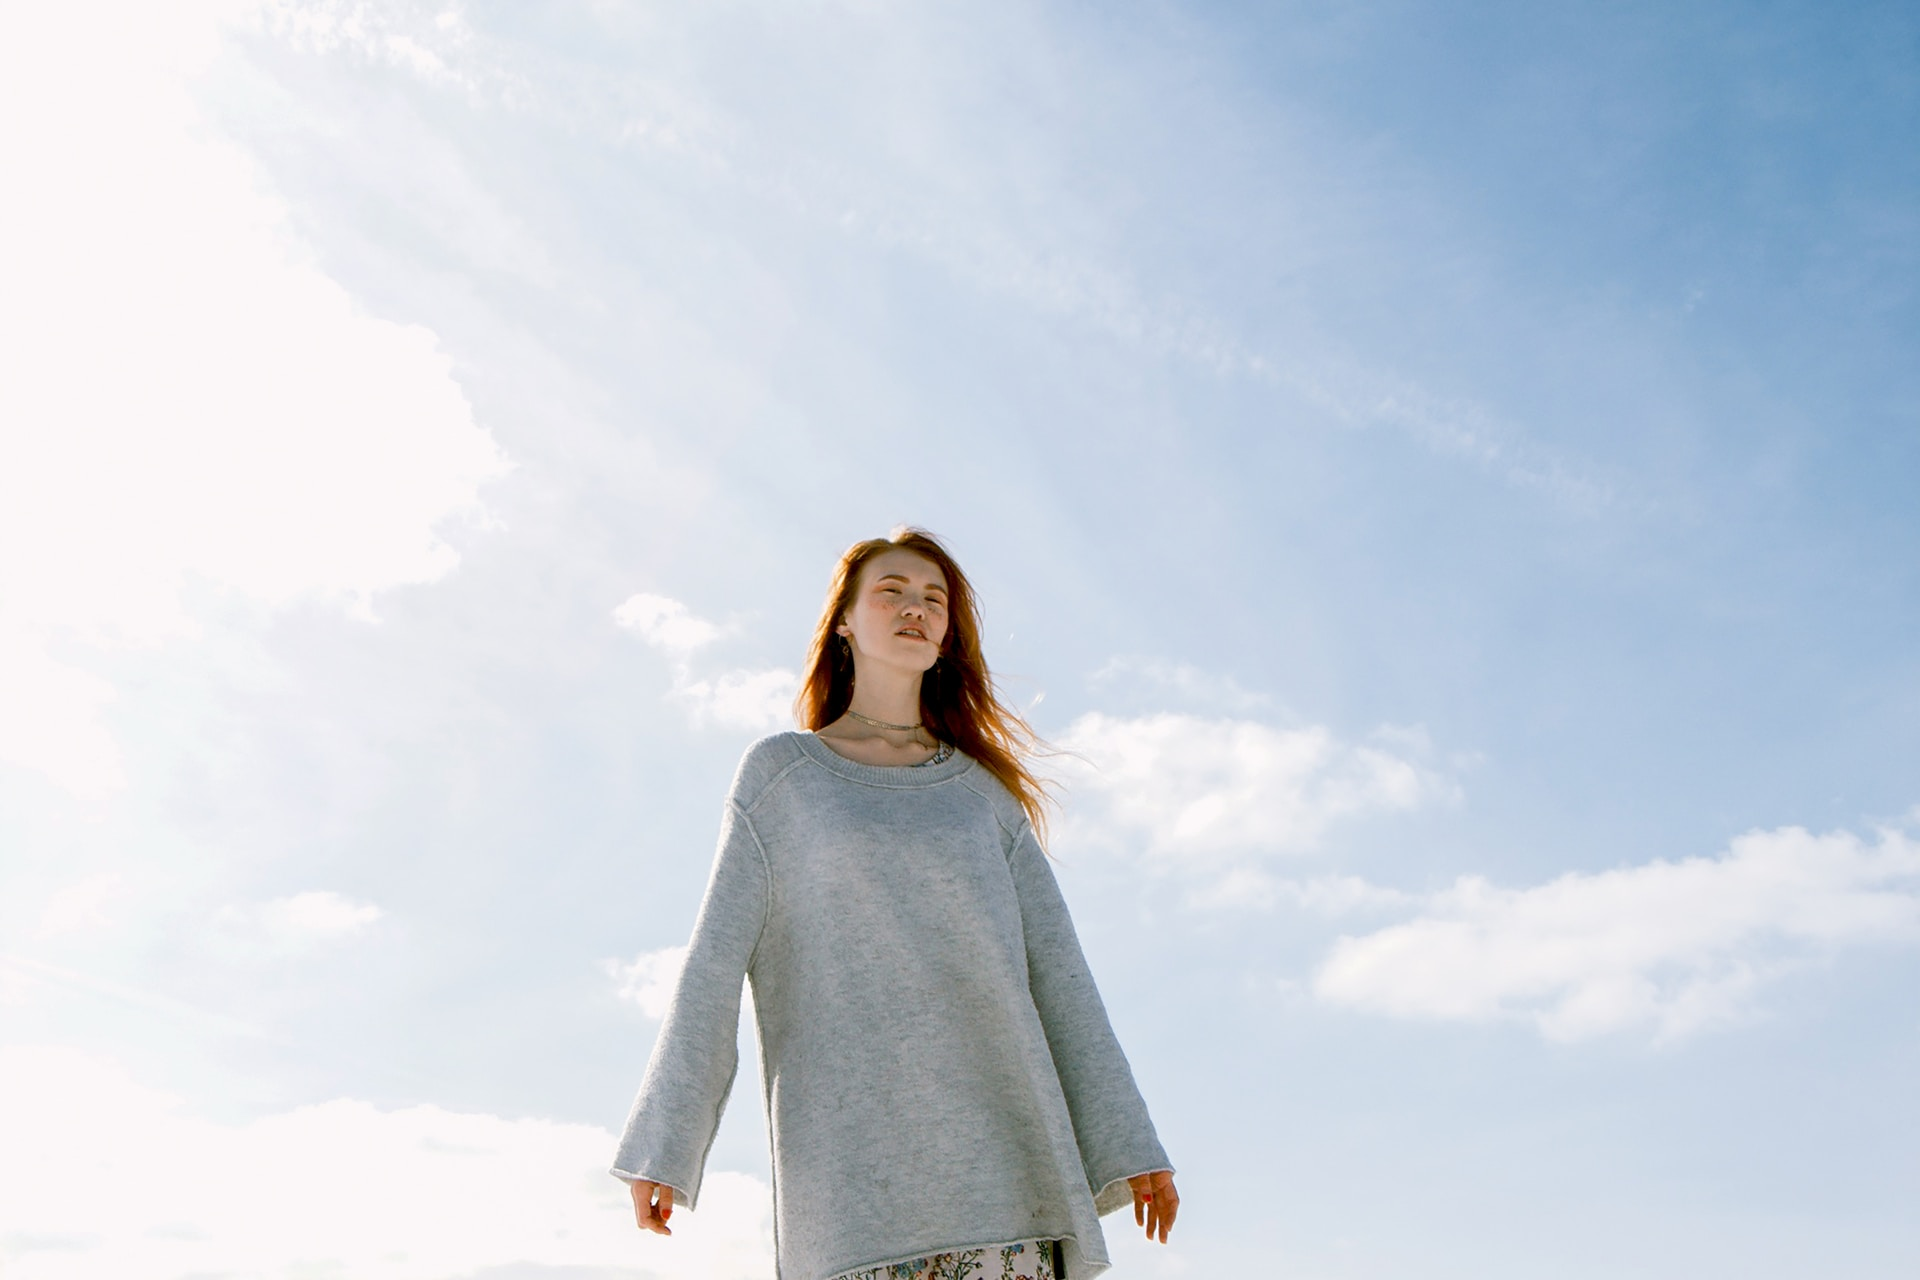 woman in gray crew-neck long-sleeved shirt standing on snowfield